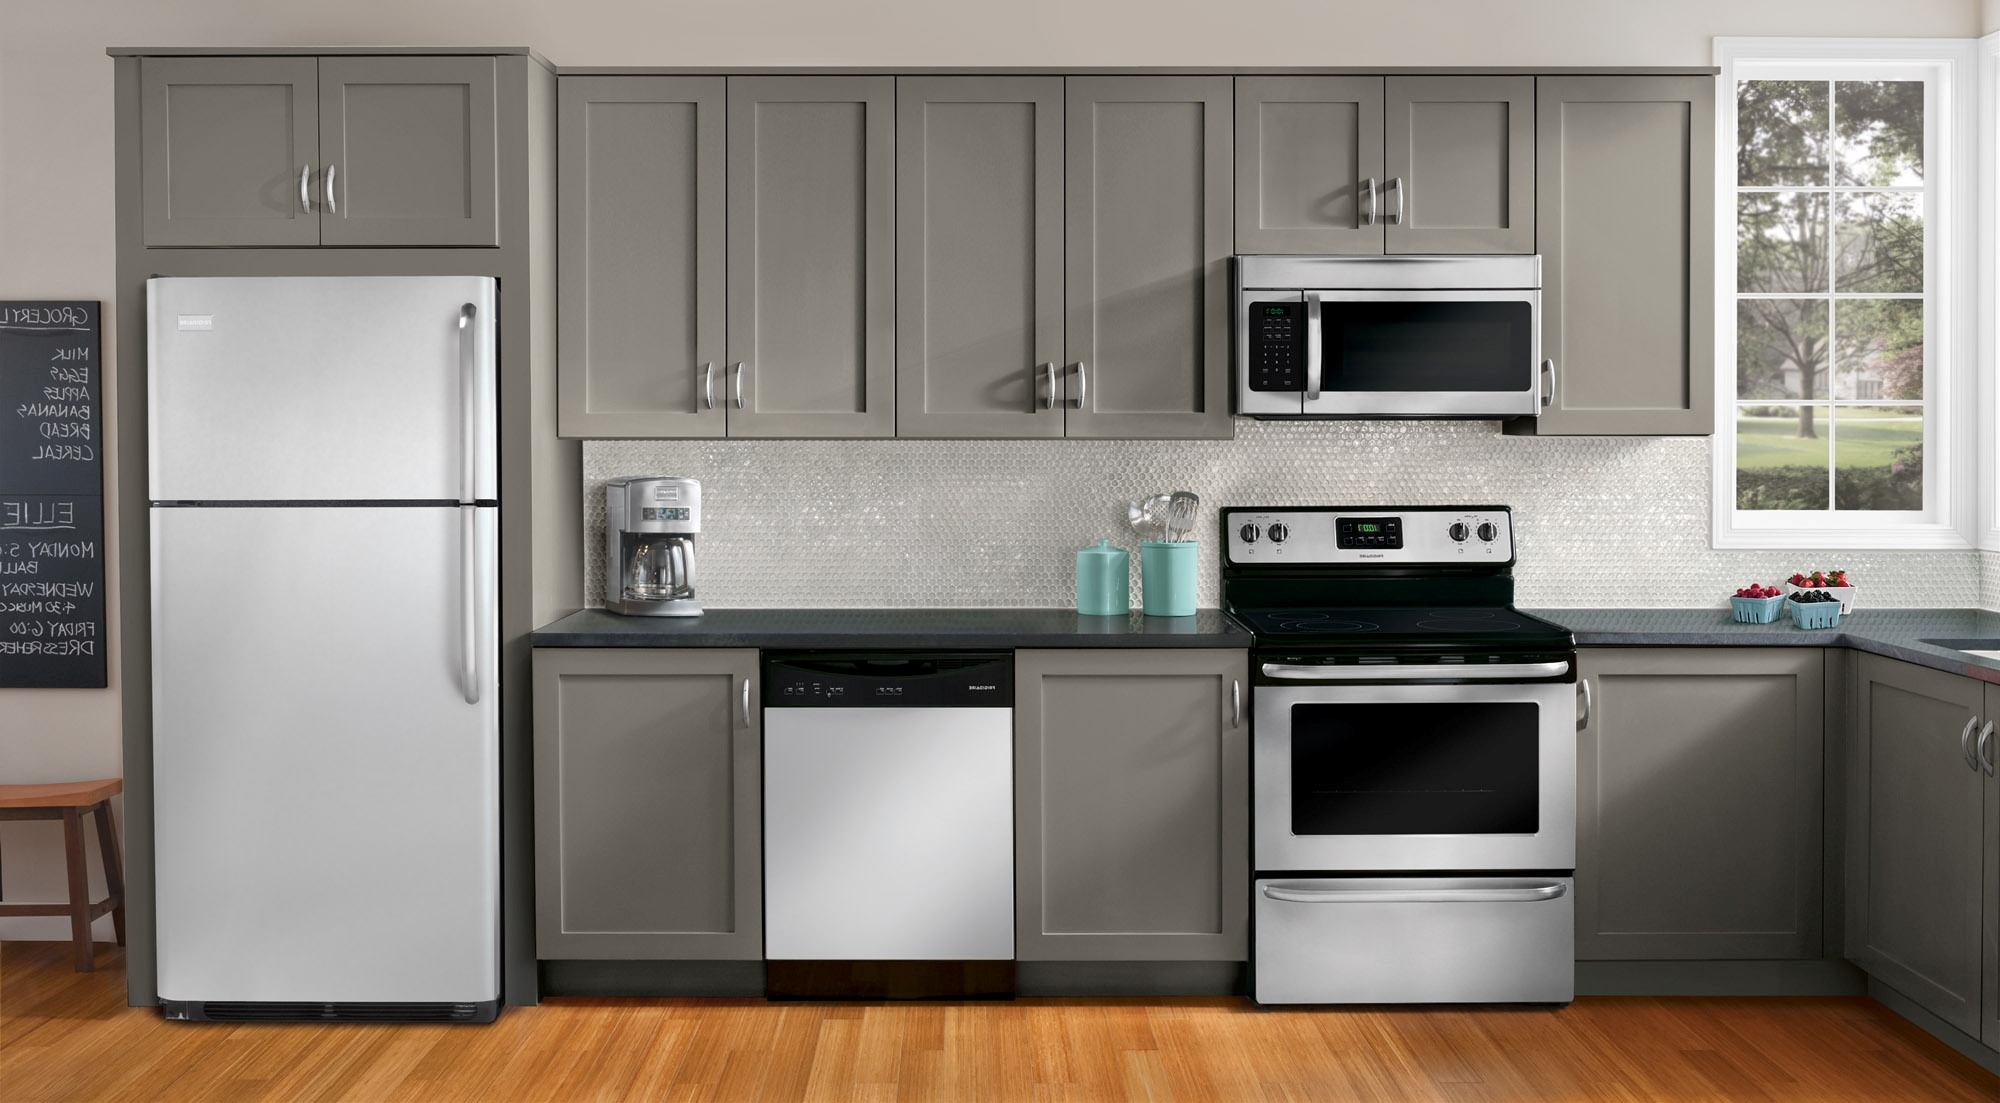 white appliances kitchen teal what we offer pioneer distributors ltd greykitchen jpg